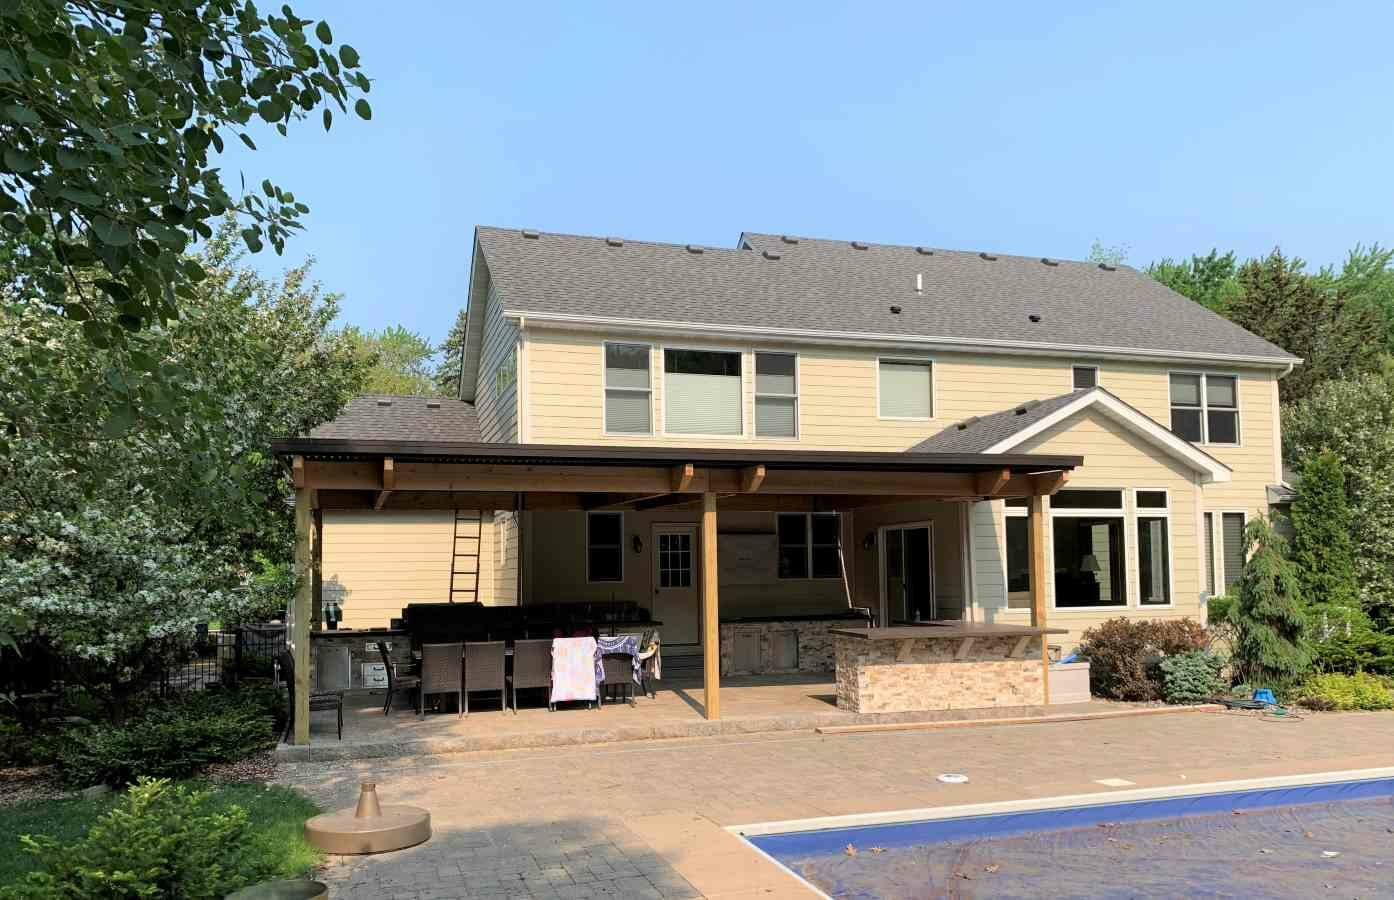 Residential patio with covered roof using motorized louvered product by Acme Awning.